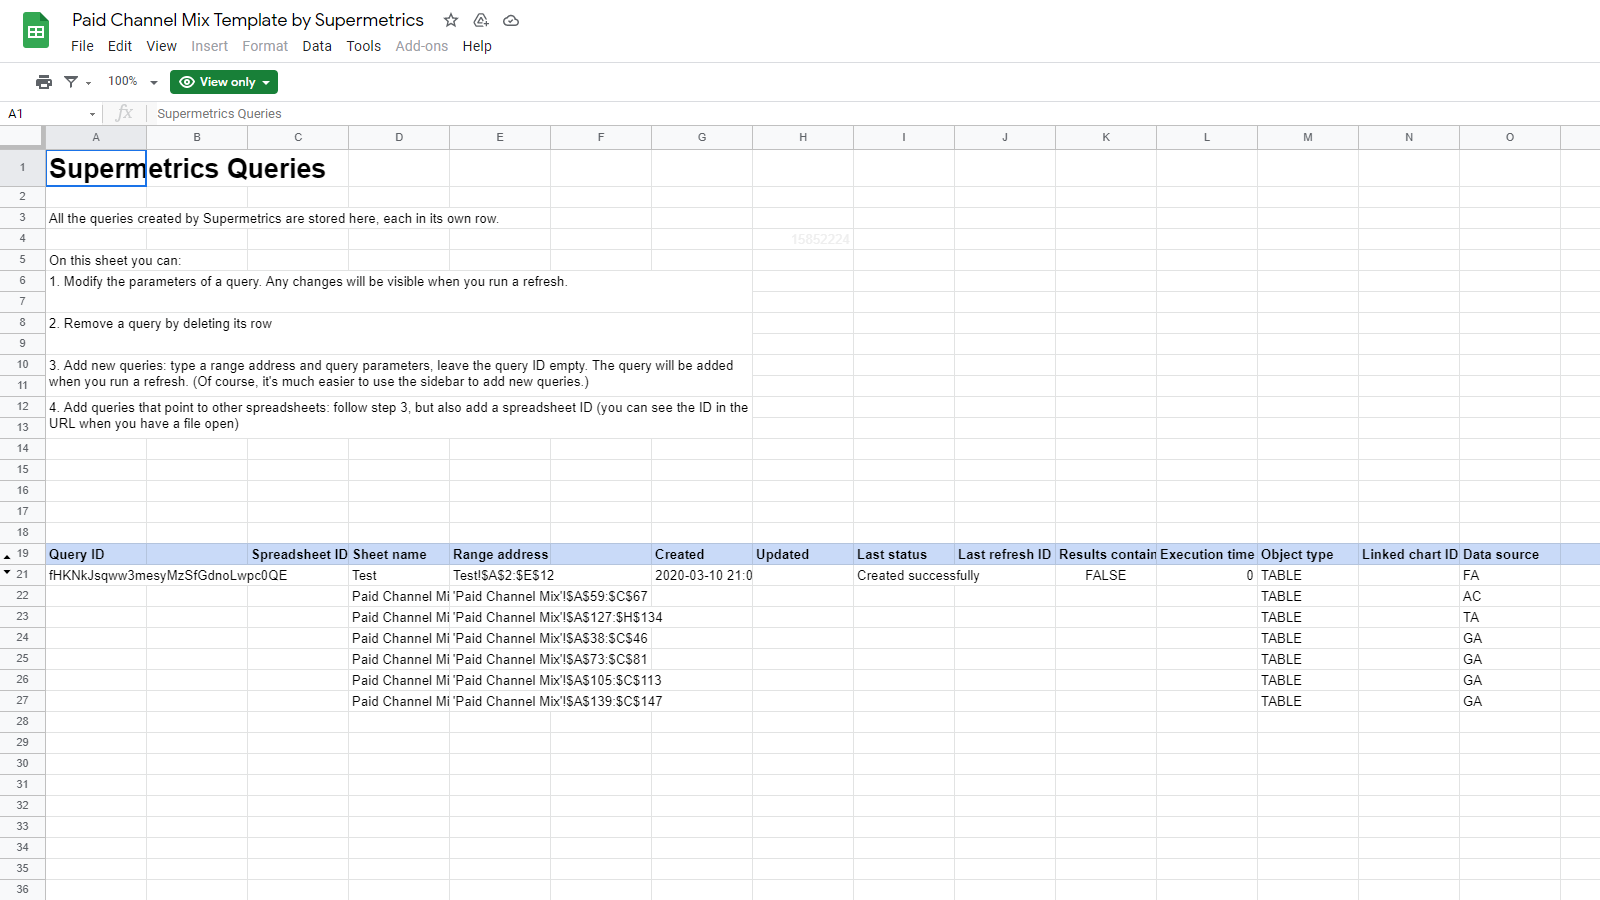 Paid channel mix report for Google Sheets